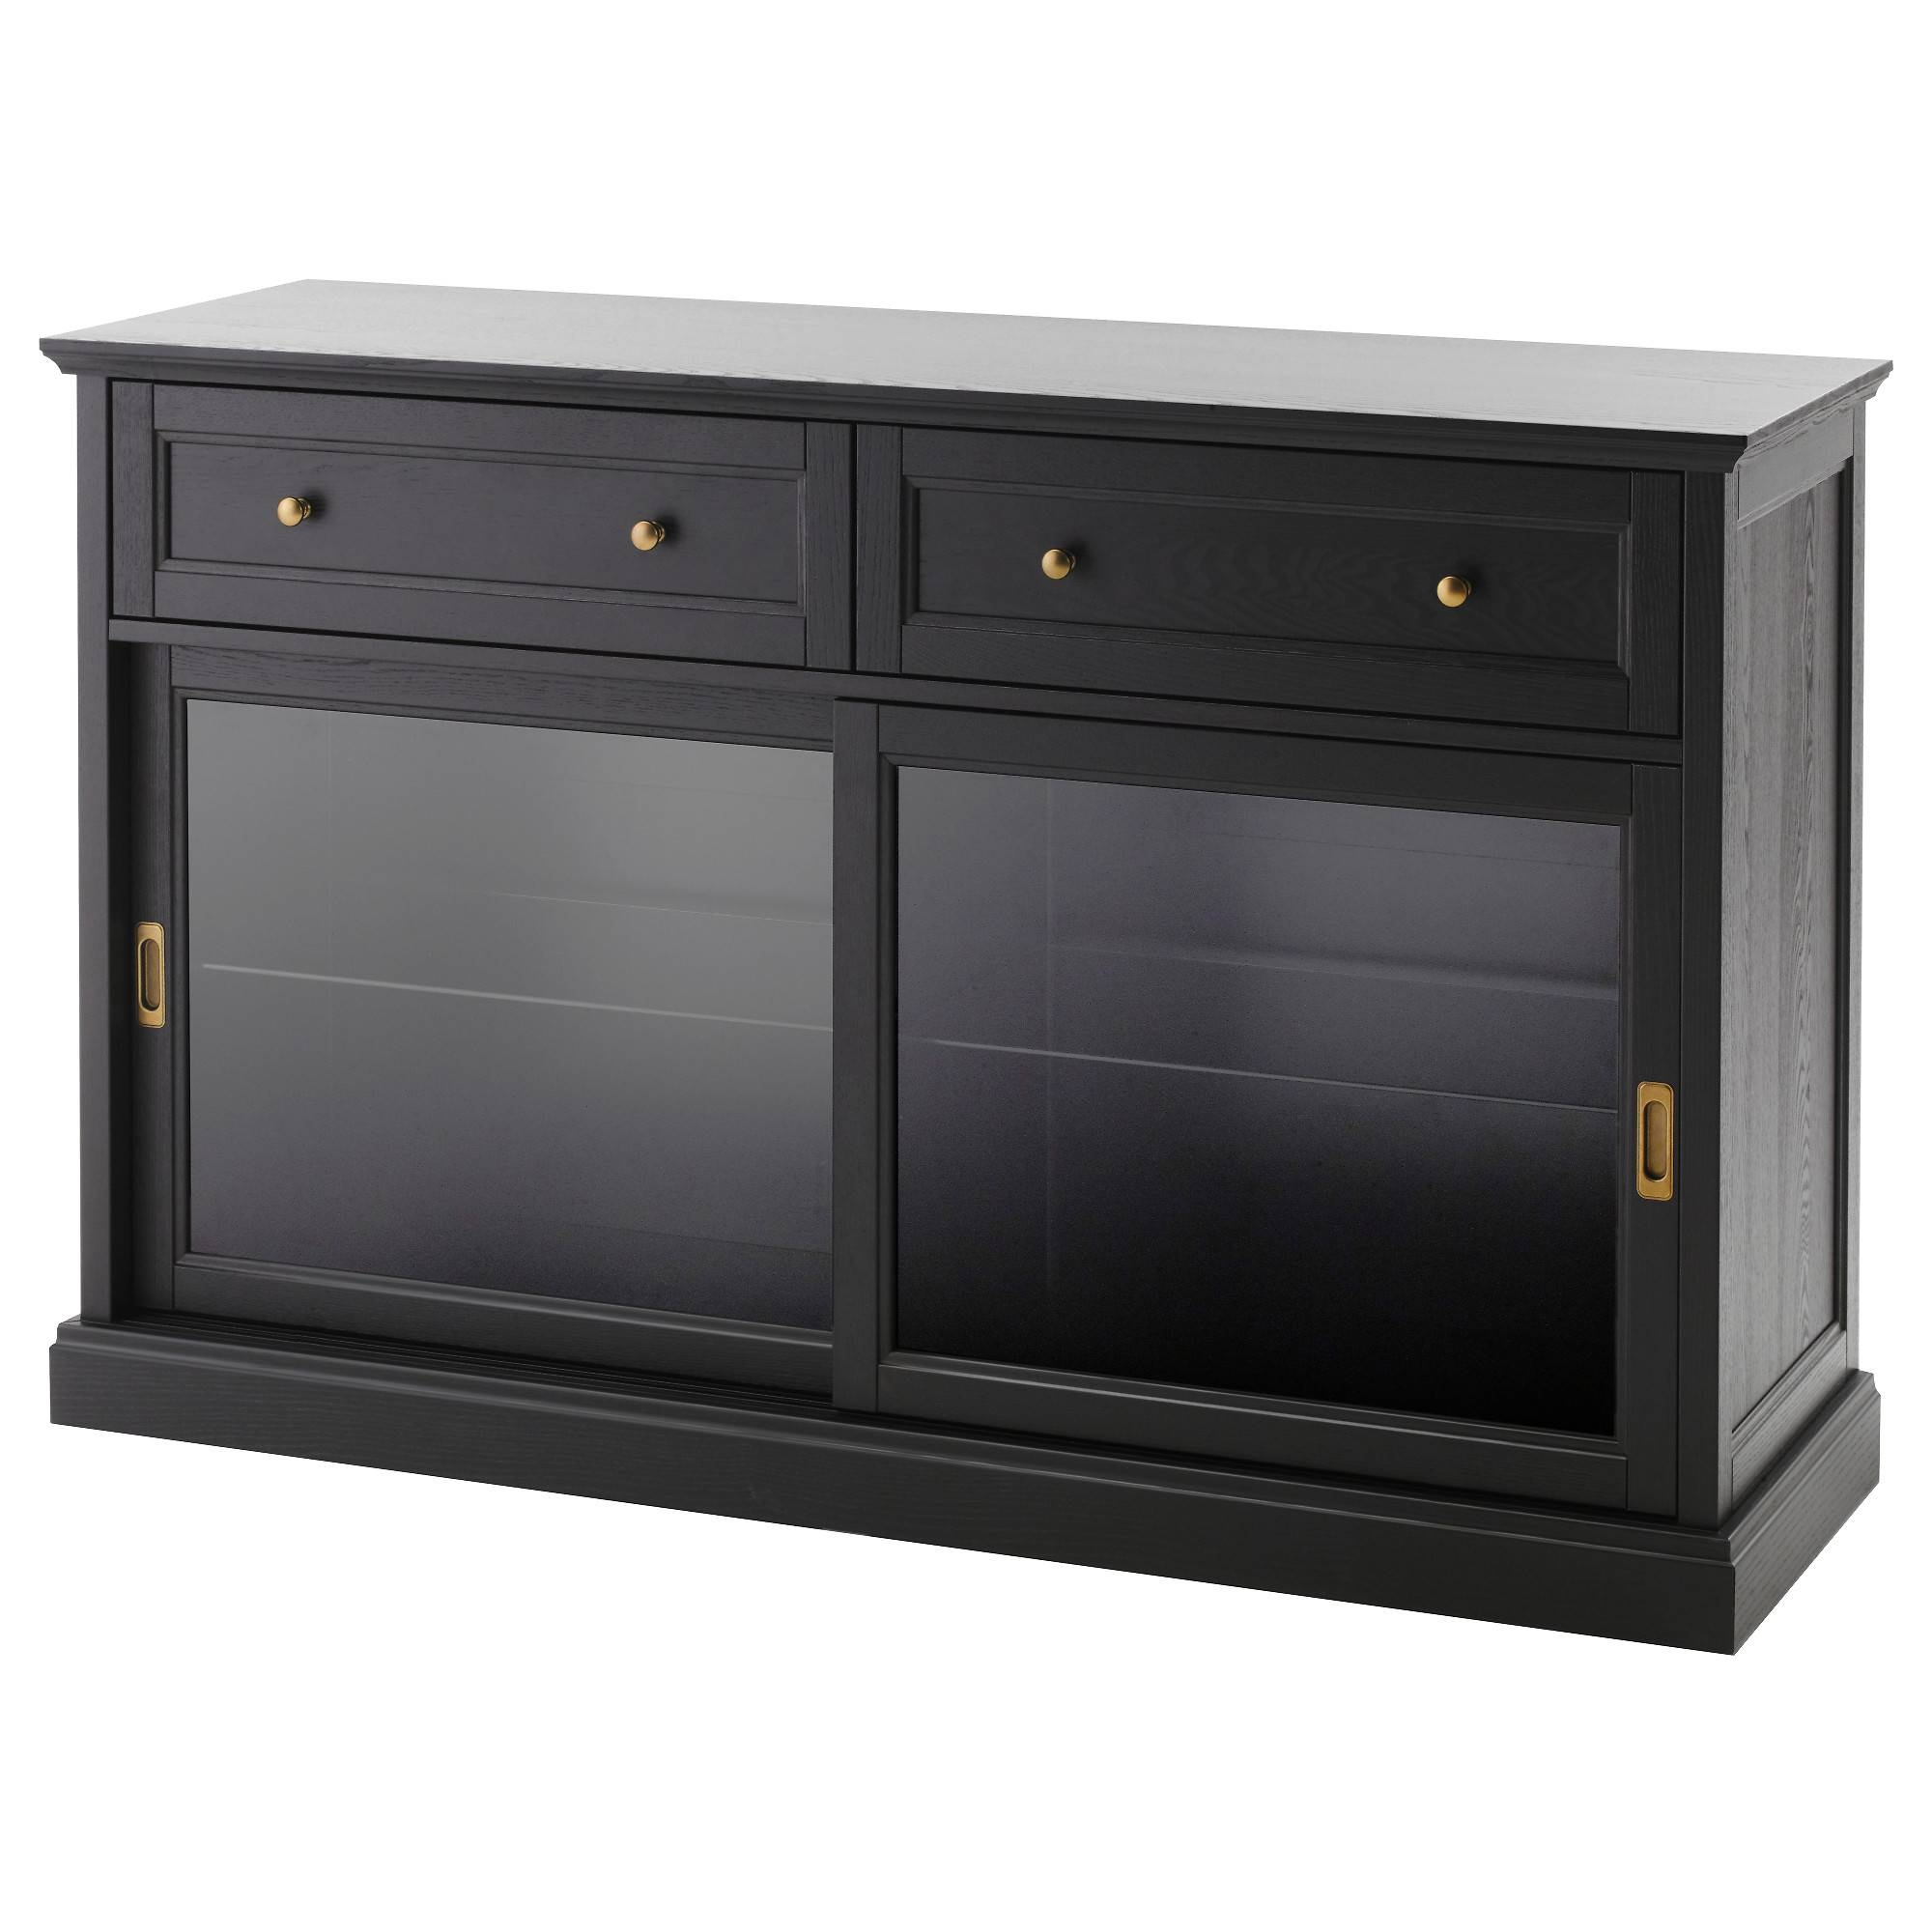 Malsjö Sideboard – Ikea Intended For Black Sideboard Cabinets (View 5 of 15)